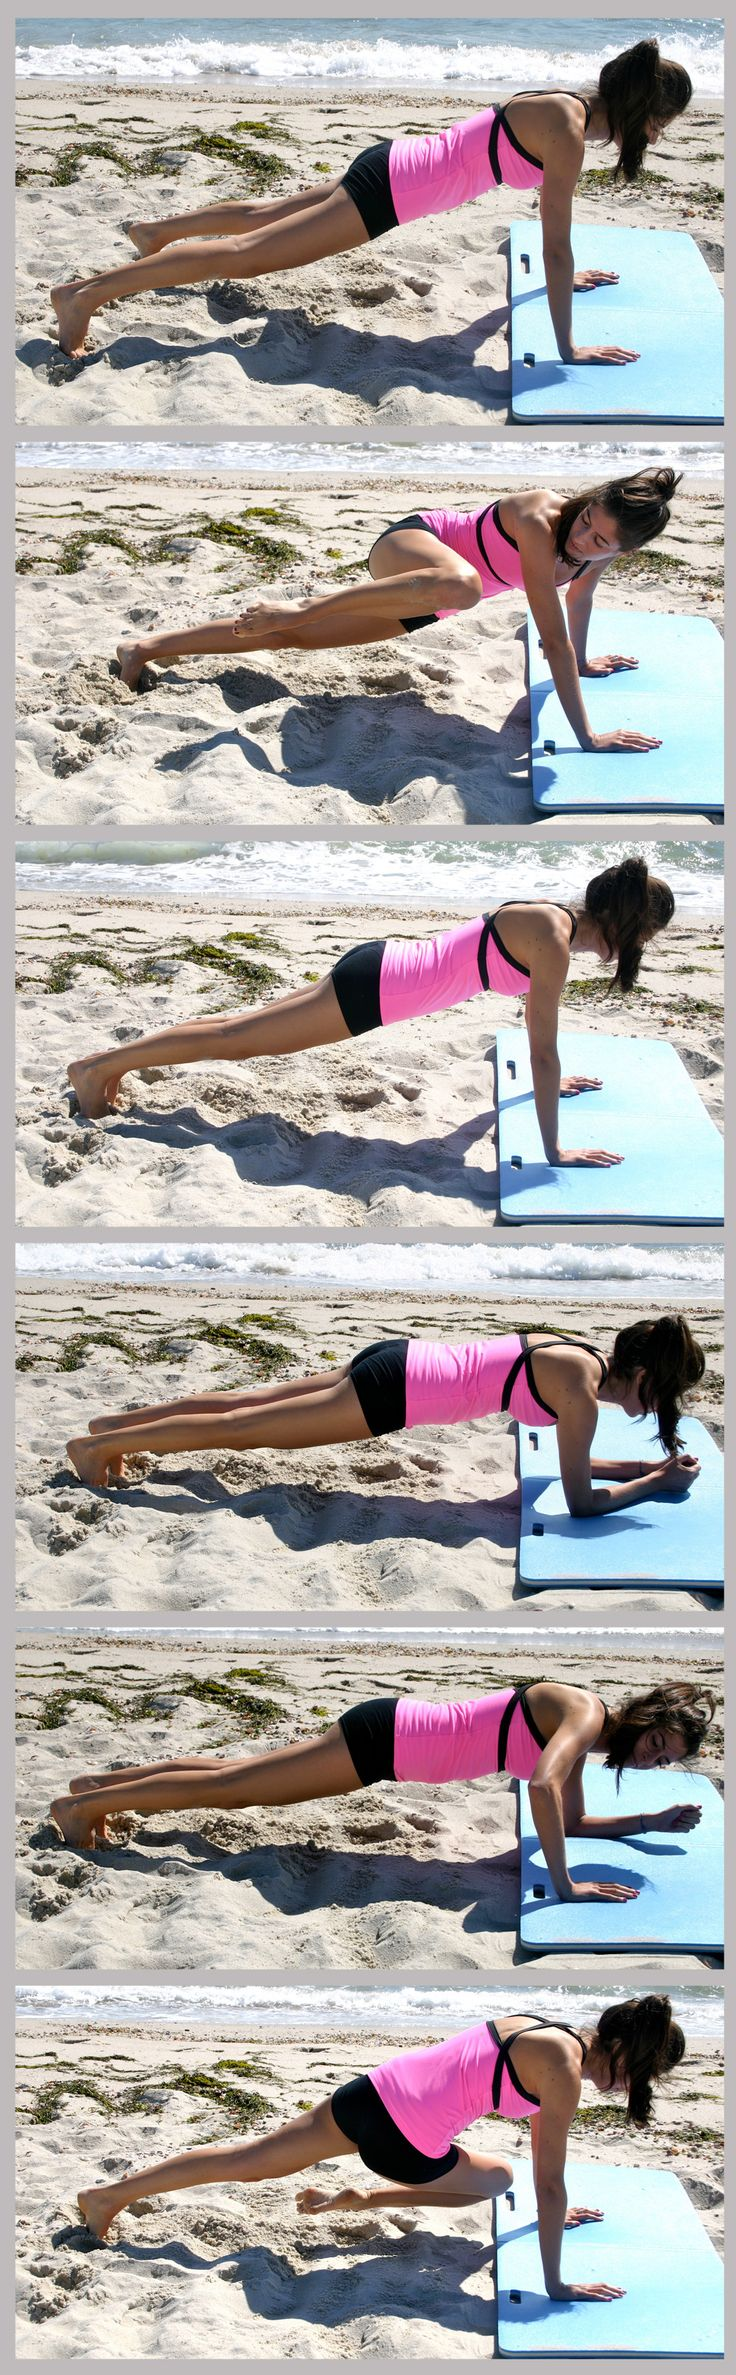 Plank Workout - Do each of the 6 moves for 20 seconds. Repeat entire 2-minute circuit 3 times, taking a 30-second break in between each round.